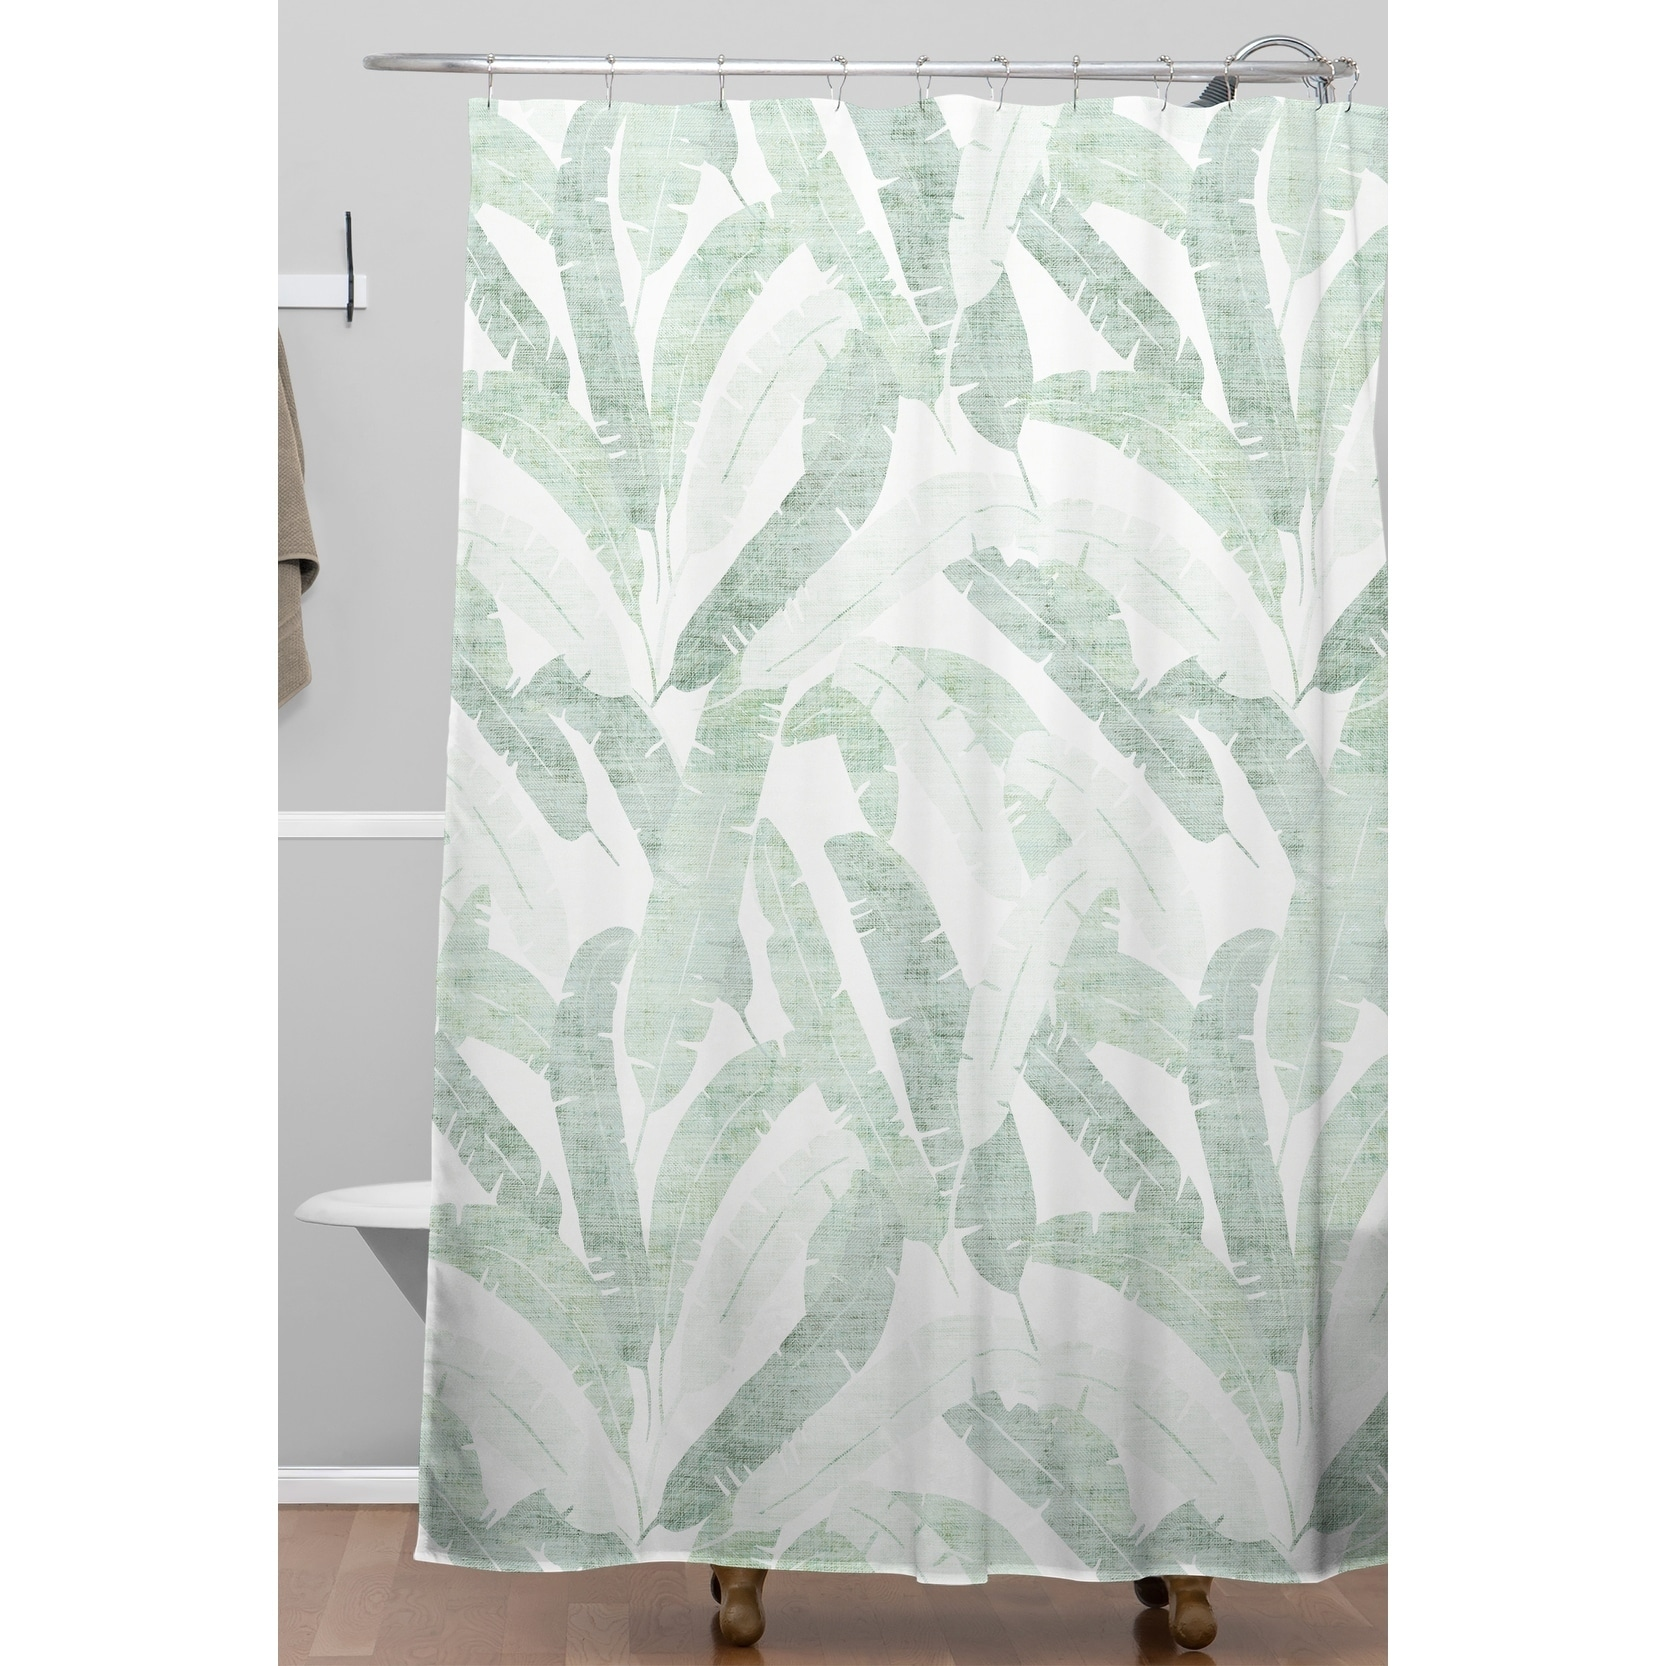 Banana Leaf Shower Curtain Deny Designs Banana Leaf Shower Curtain 69